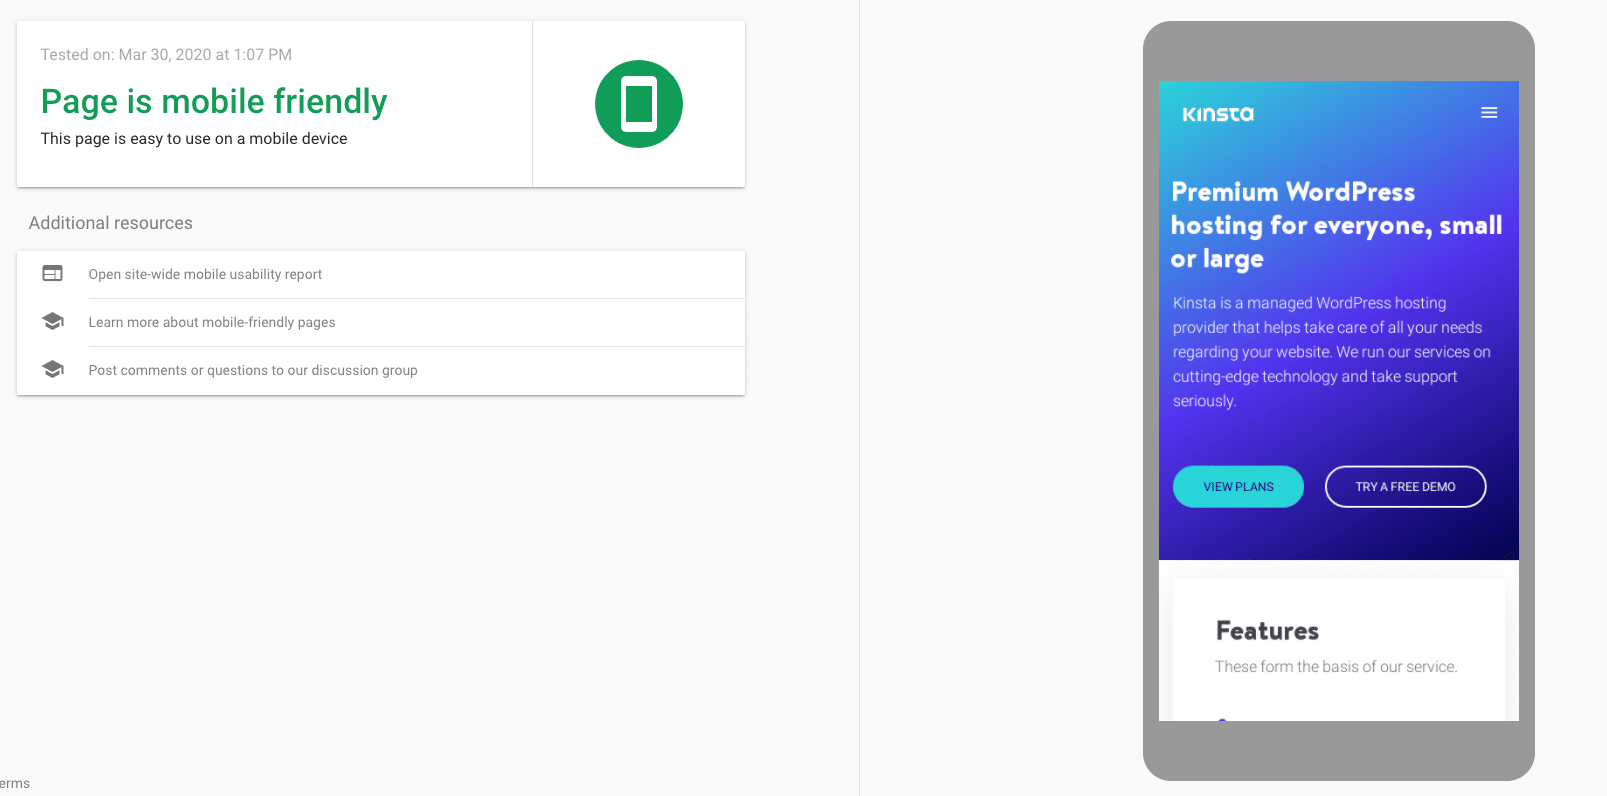 De mobile-friendly test van Google van de website van Kinsta